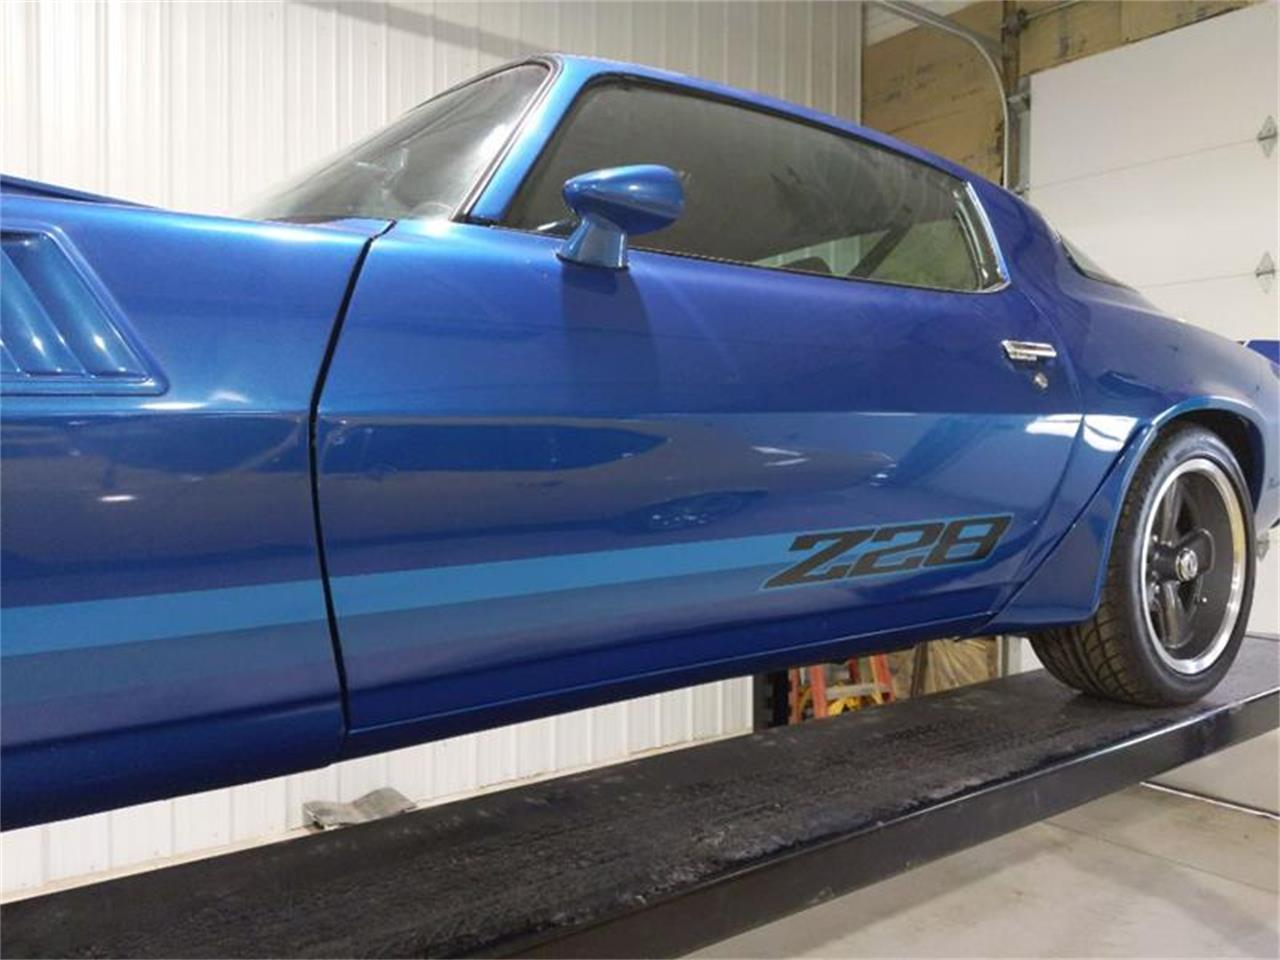 Large Picture of 1978 Chevrolet Camaro located in Spirit Lake Iowa Auction Vehicle Offered by Cruz'n Motors - PX97